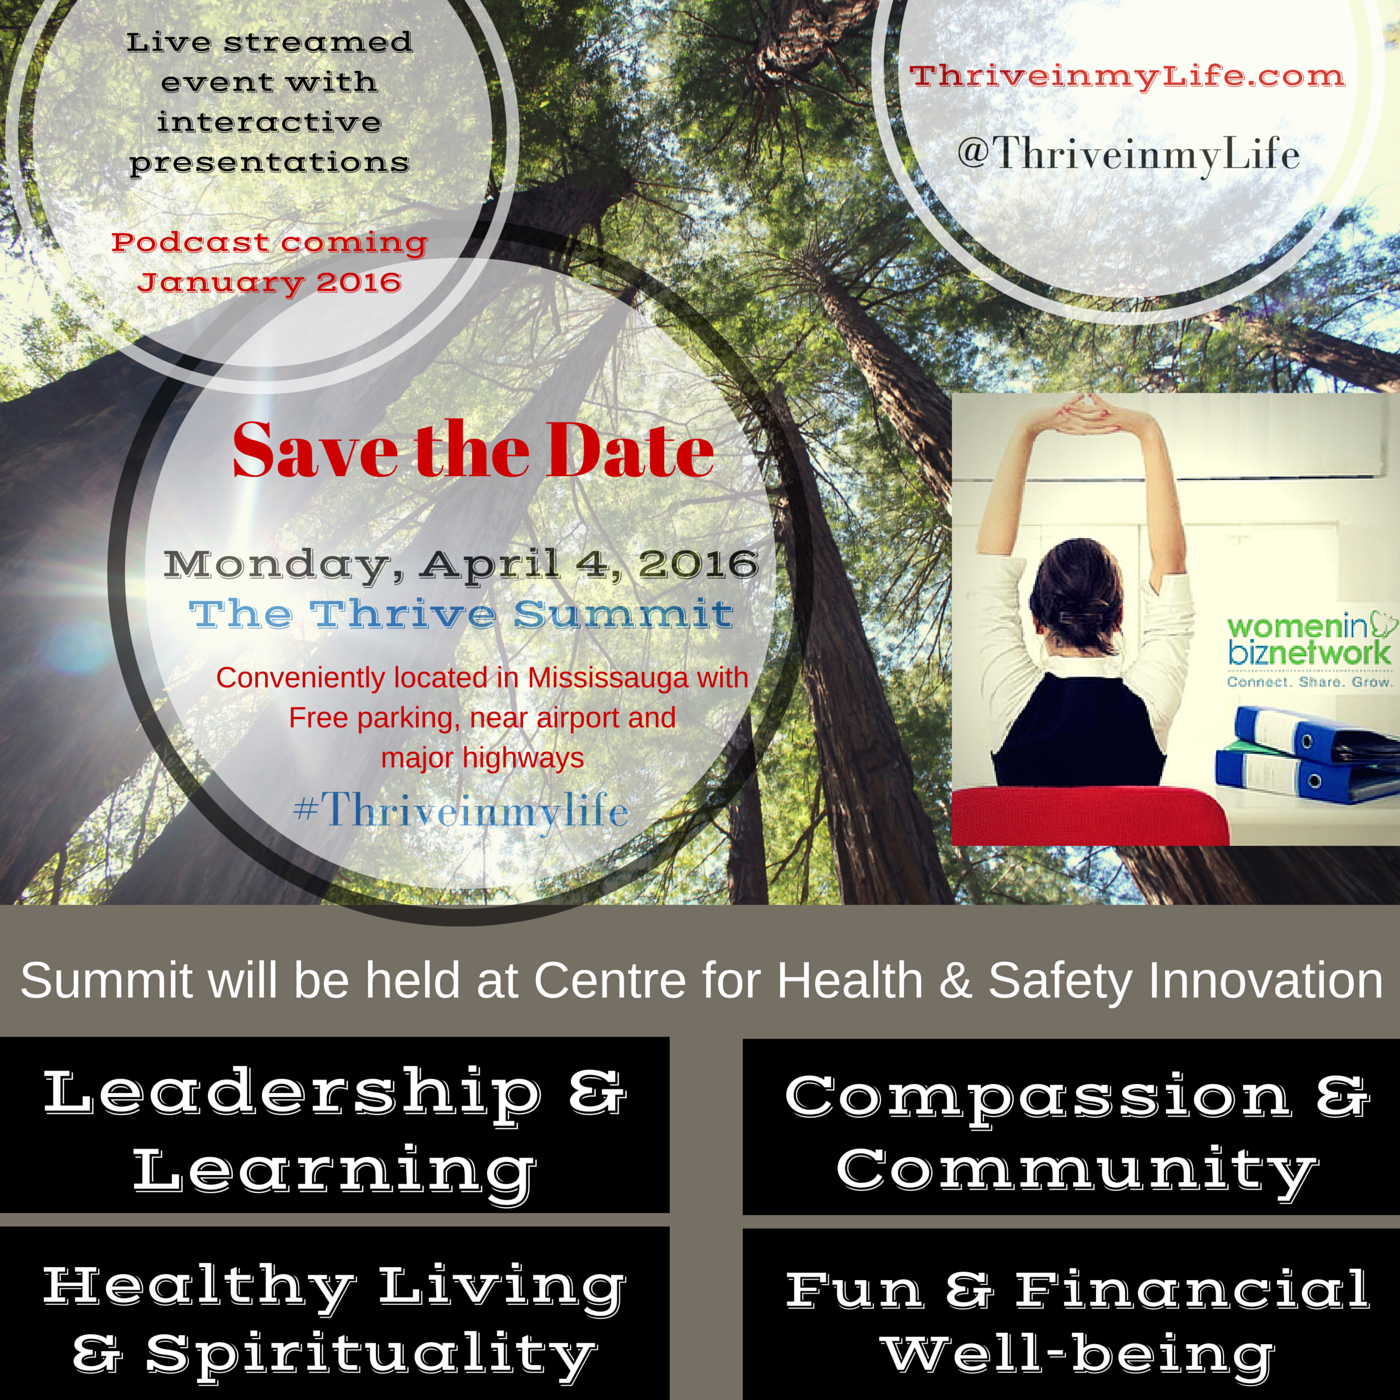 Mark your Calendars! The Thrive Summit is coming April 4th #ThriveinmyLife